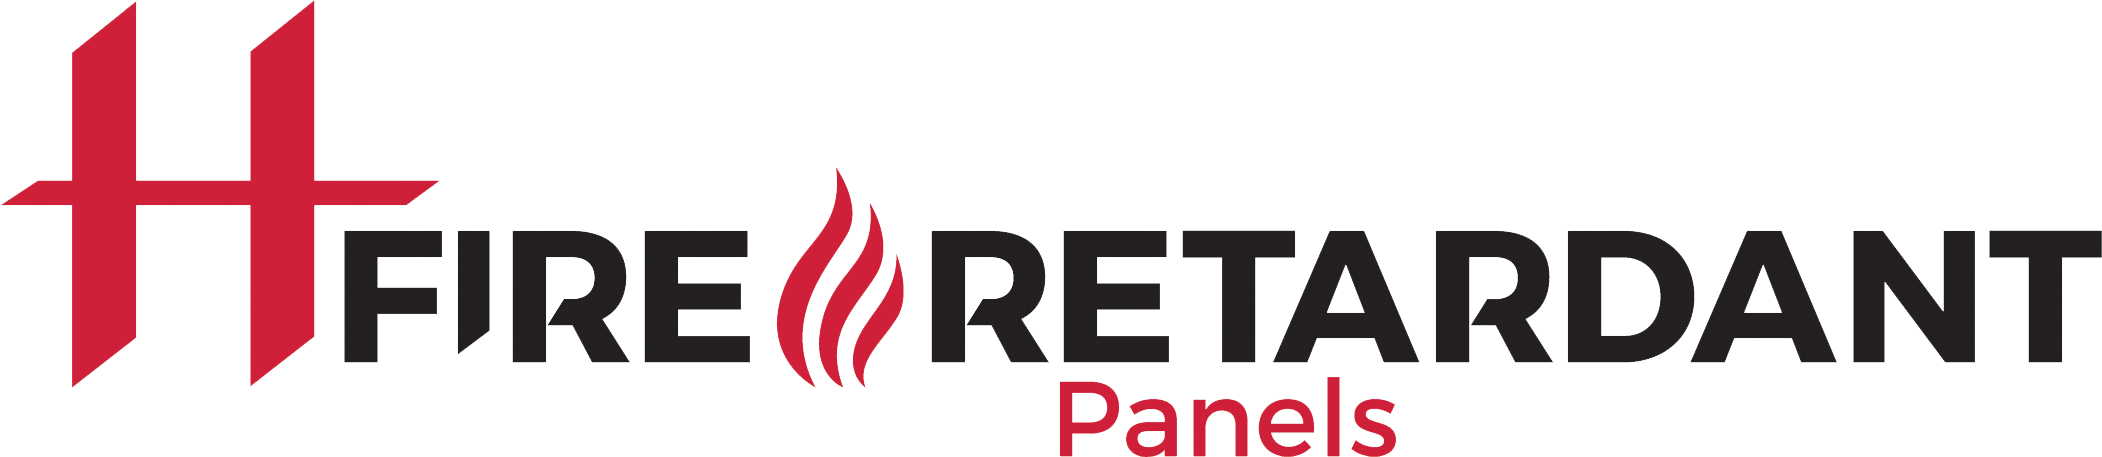 Fire Retardant Panels